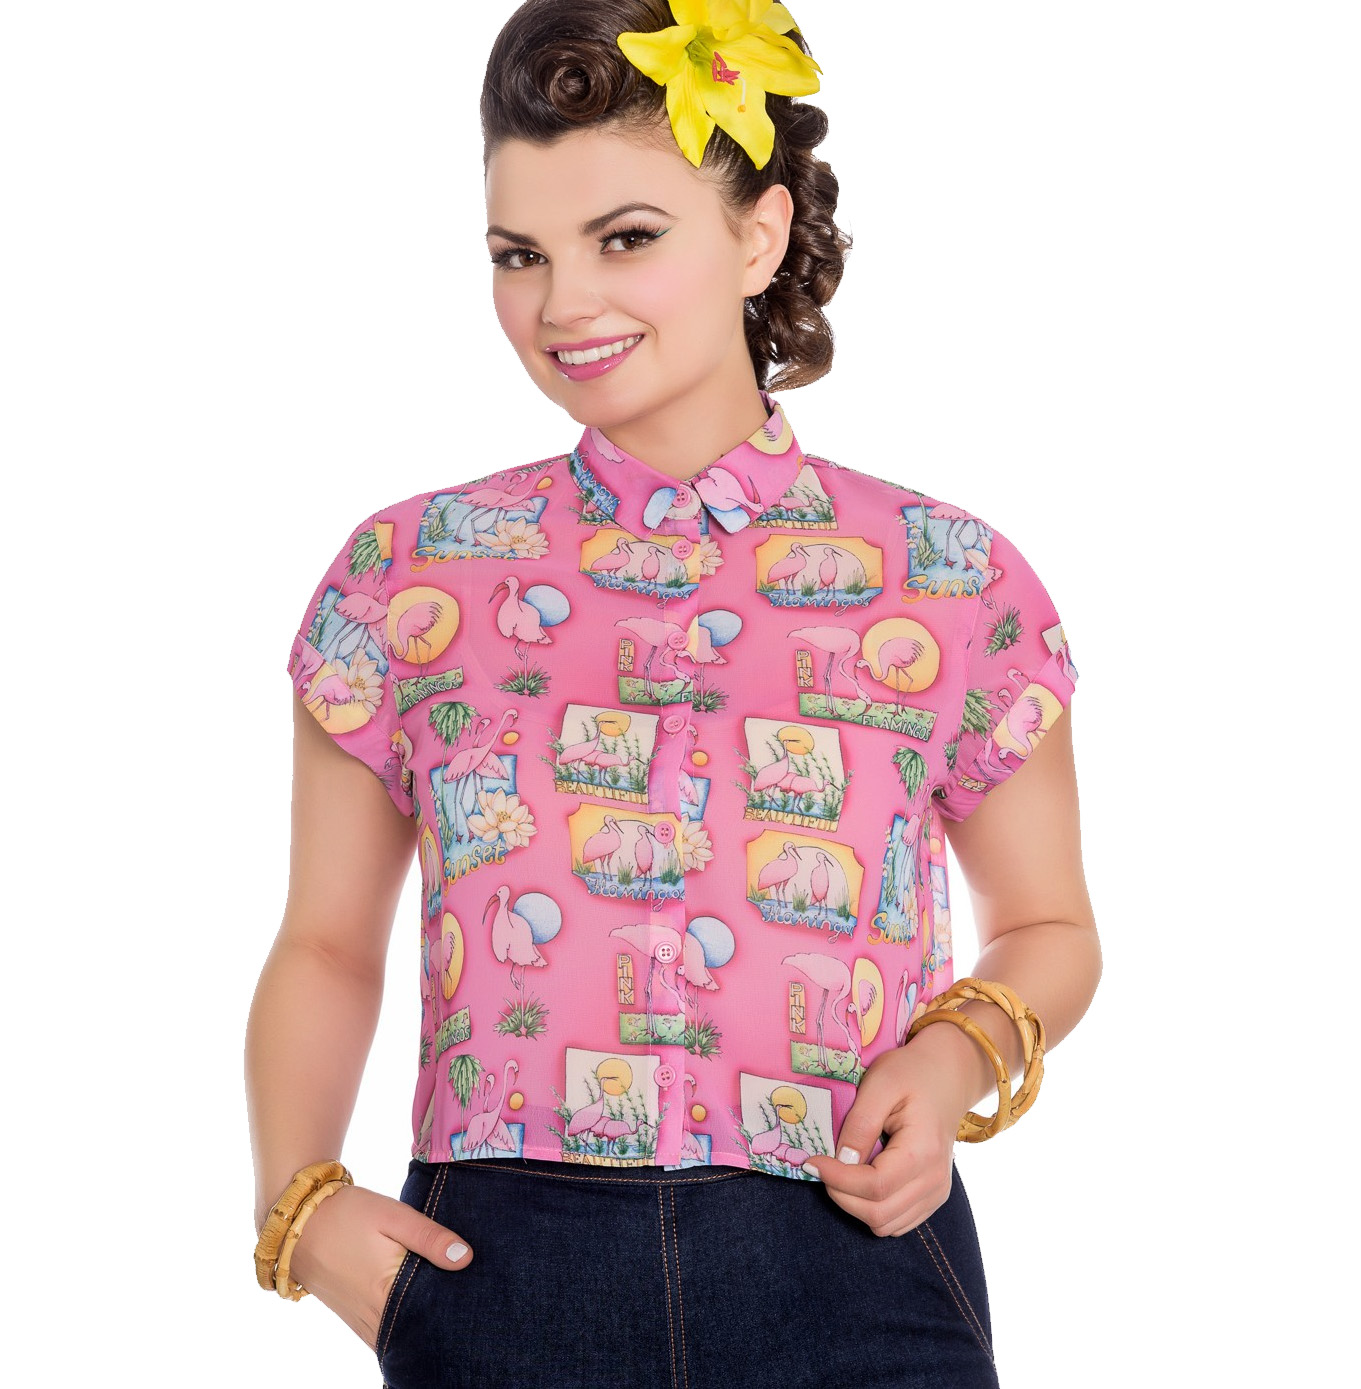 thumbnail 14 - Hell Bunny 50s Retro Top Pink Flamingo MAXINE Cropped Blouse Shirt All Sizes